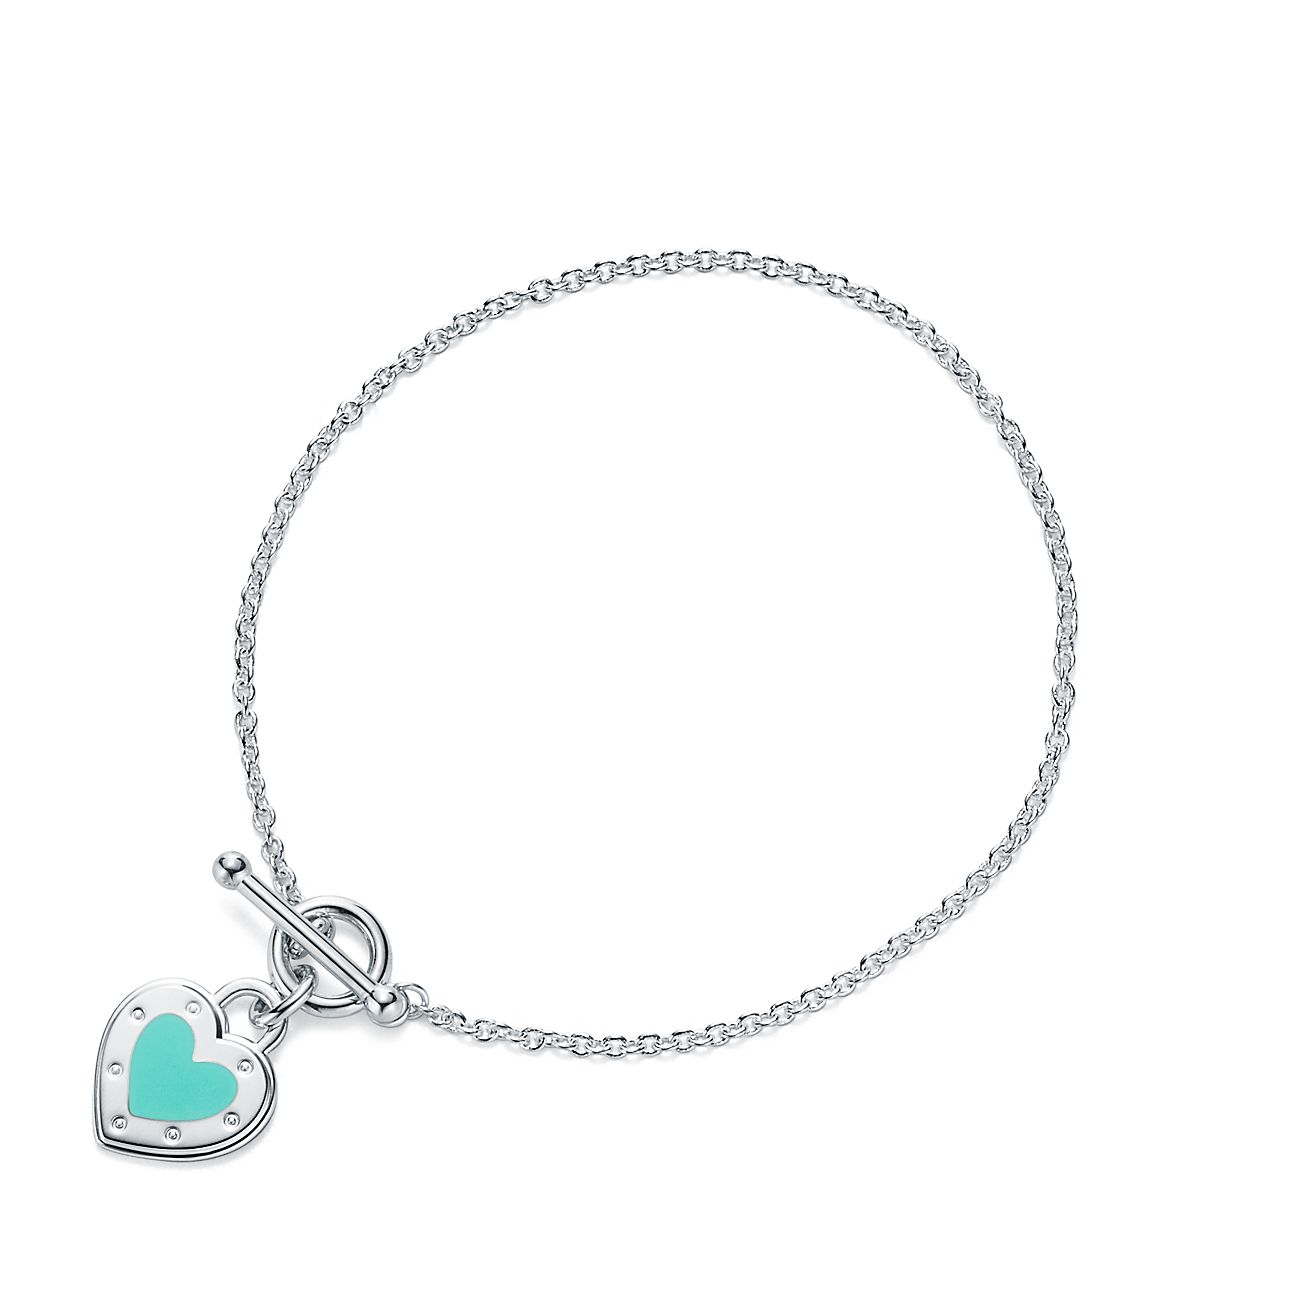 Return To TiffanyTM Love Heart Toggle Bracelet In Silver With Enamel